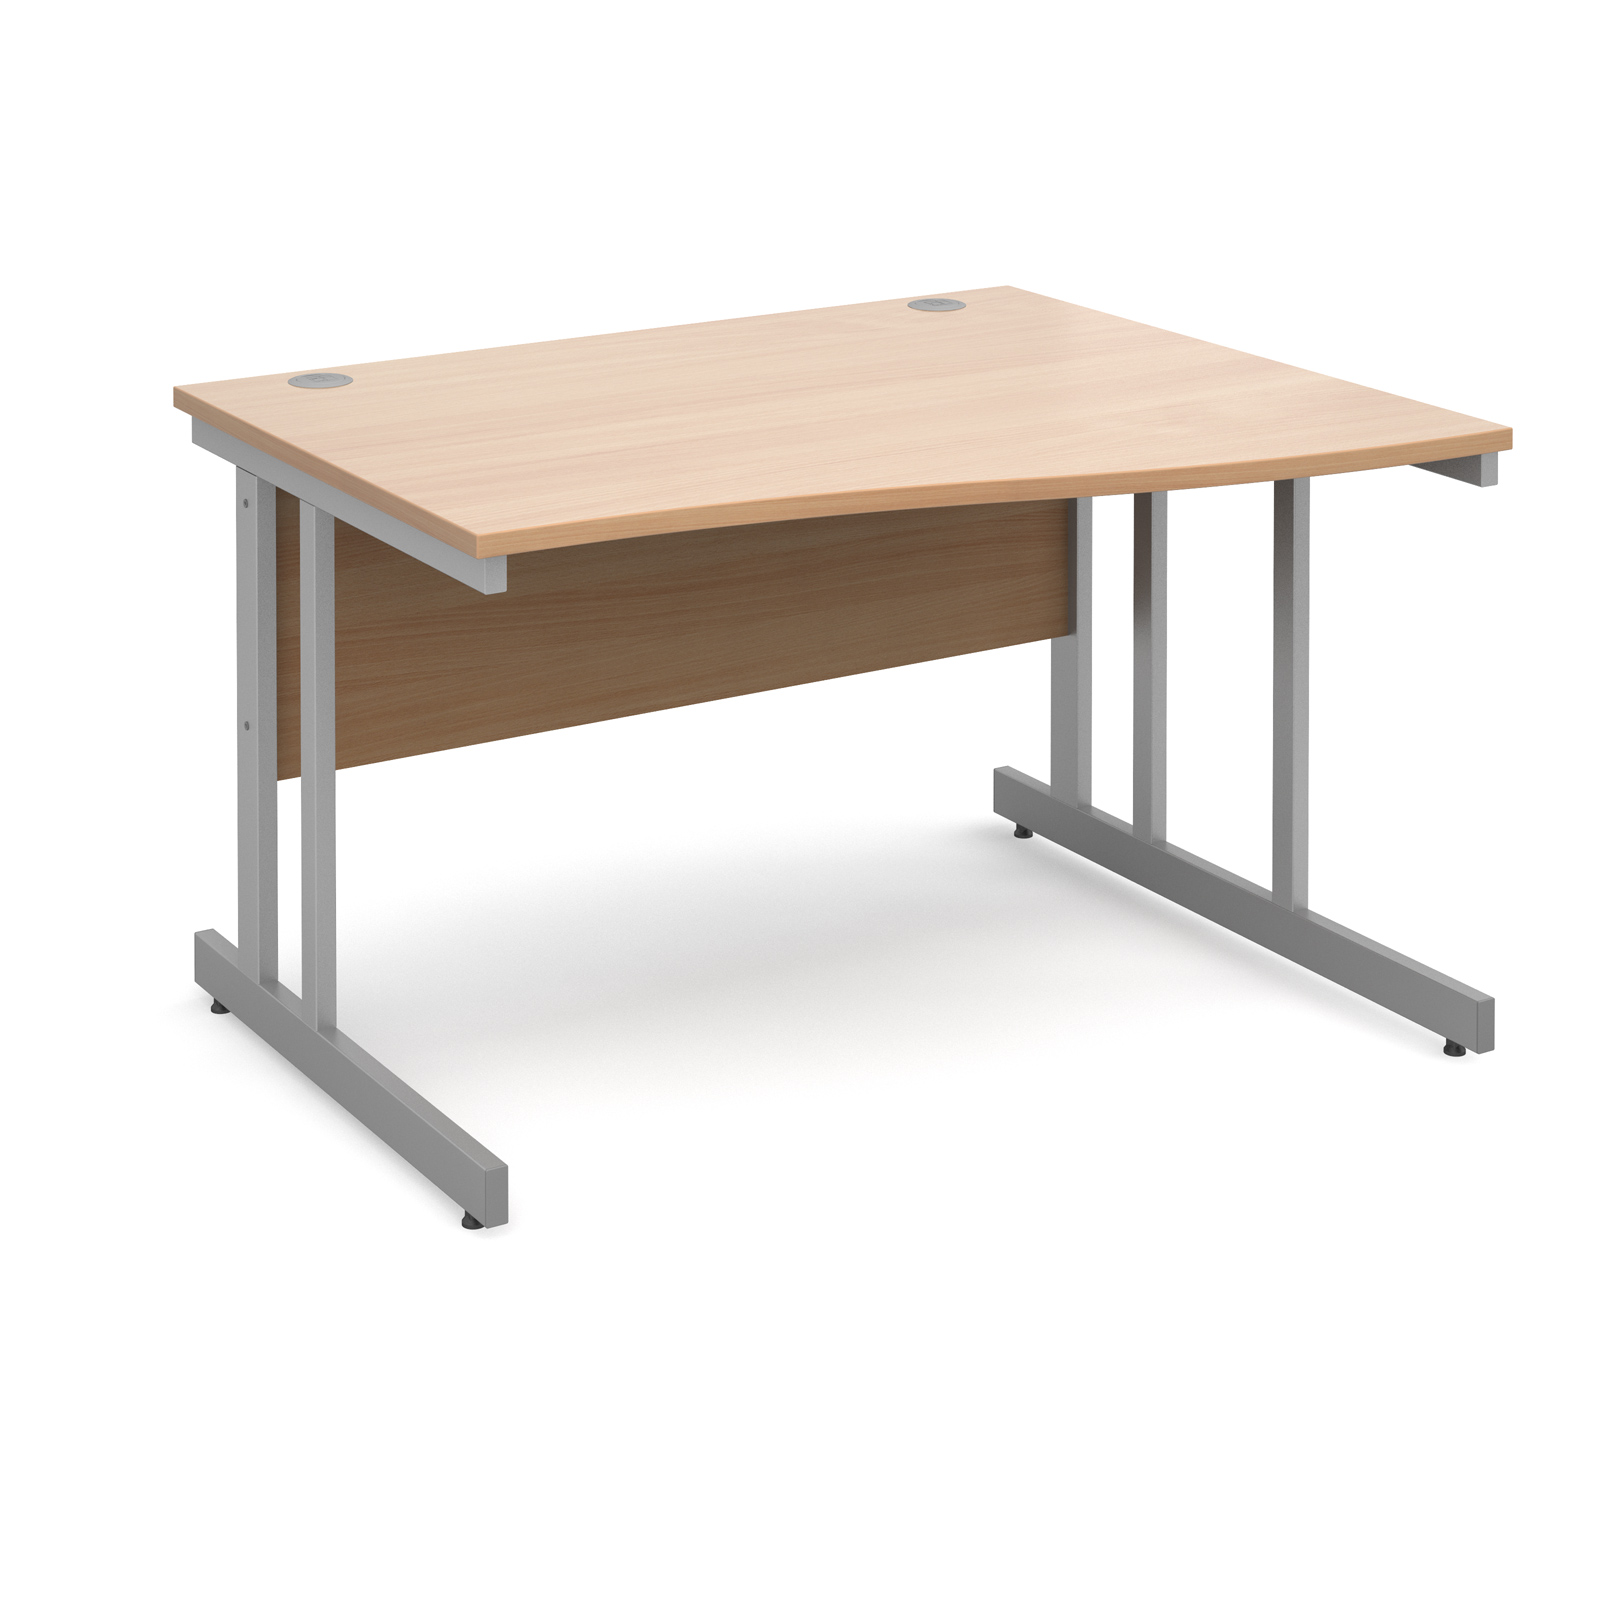 Momento right hand wave desk 1200mm - silver cantilever frame, beech top